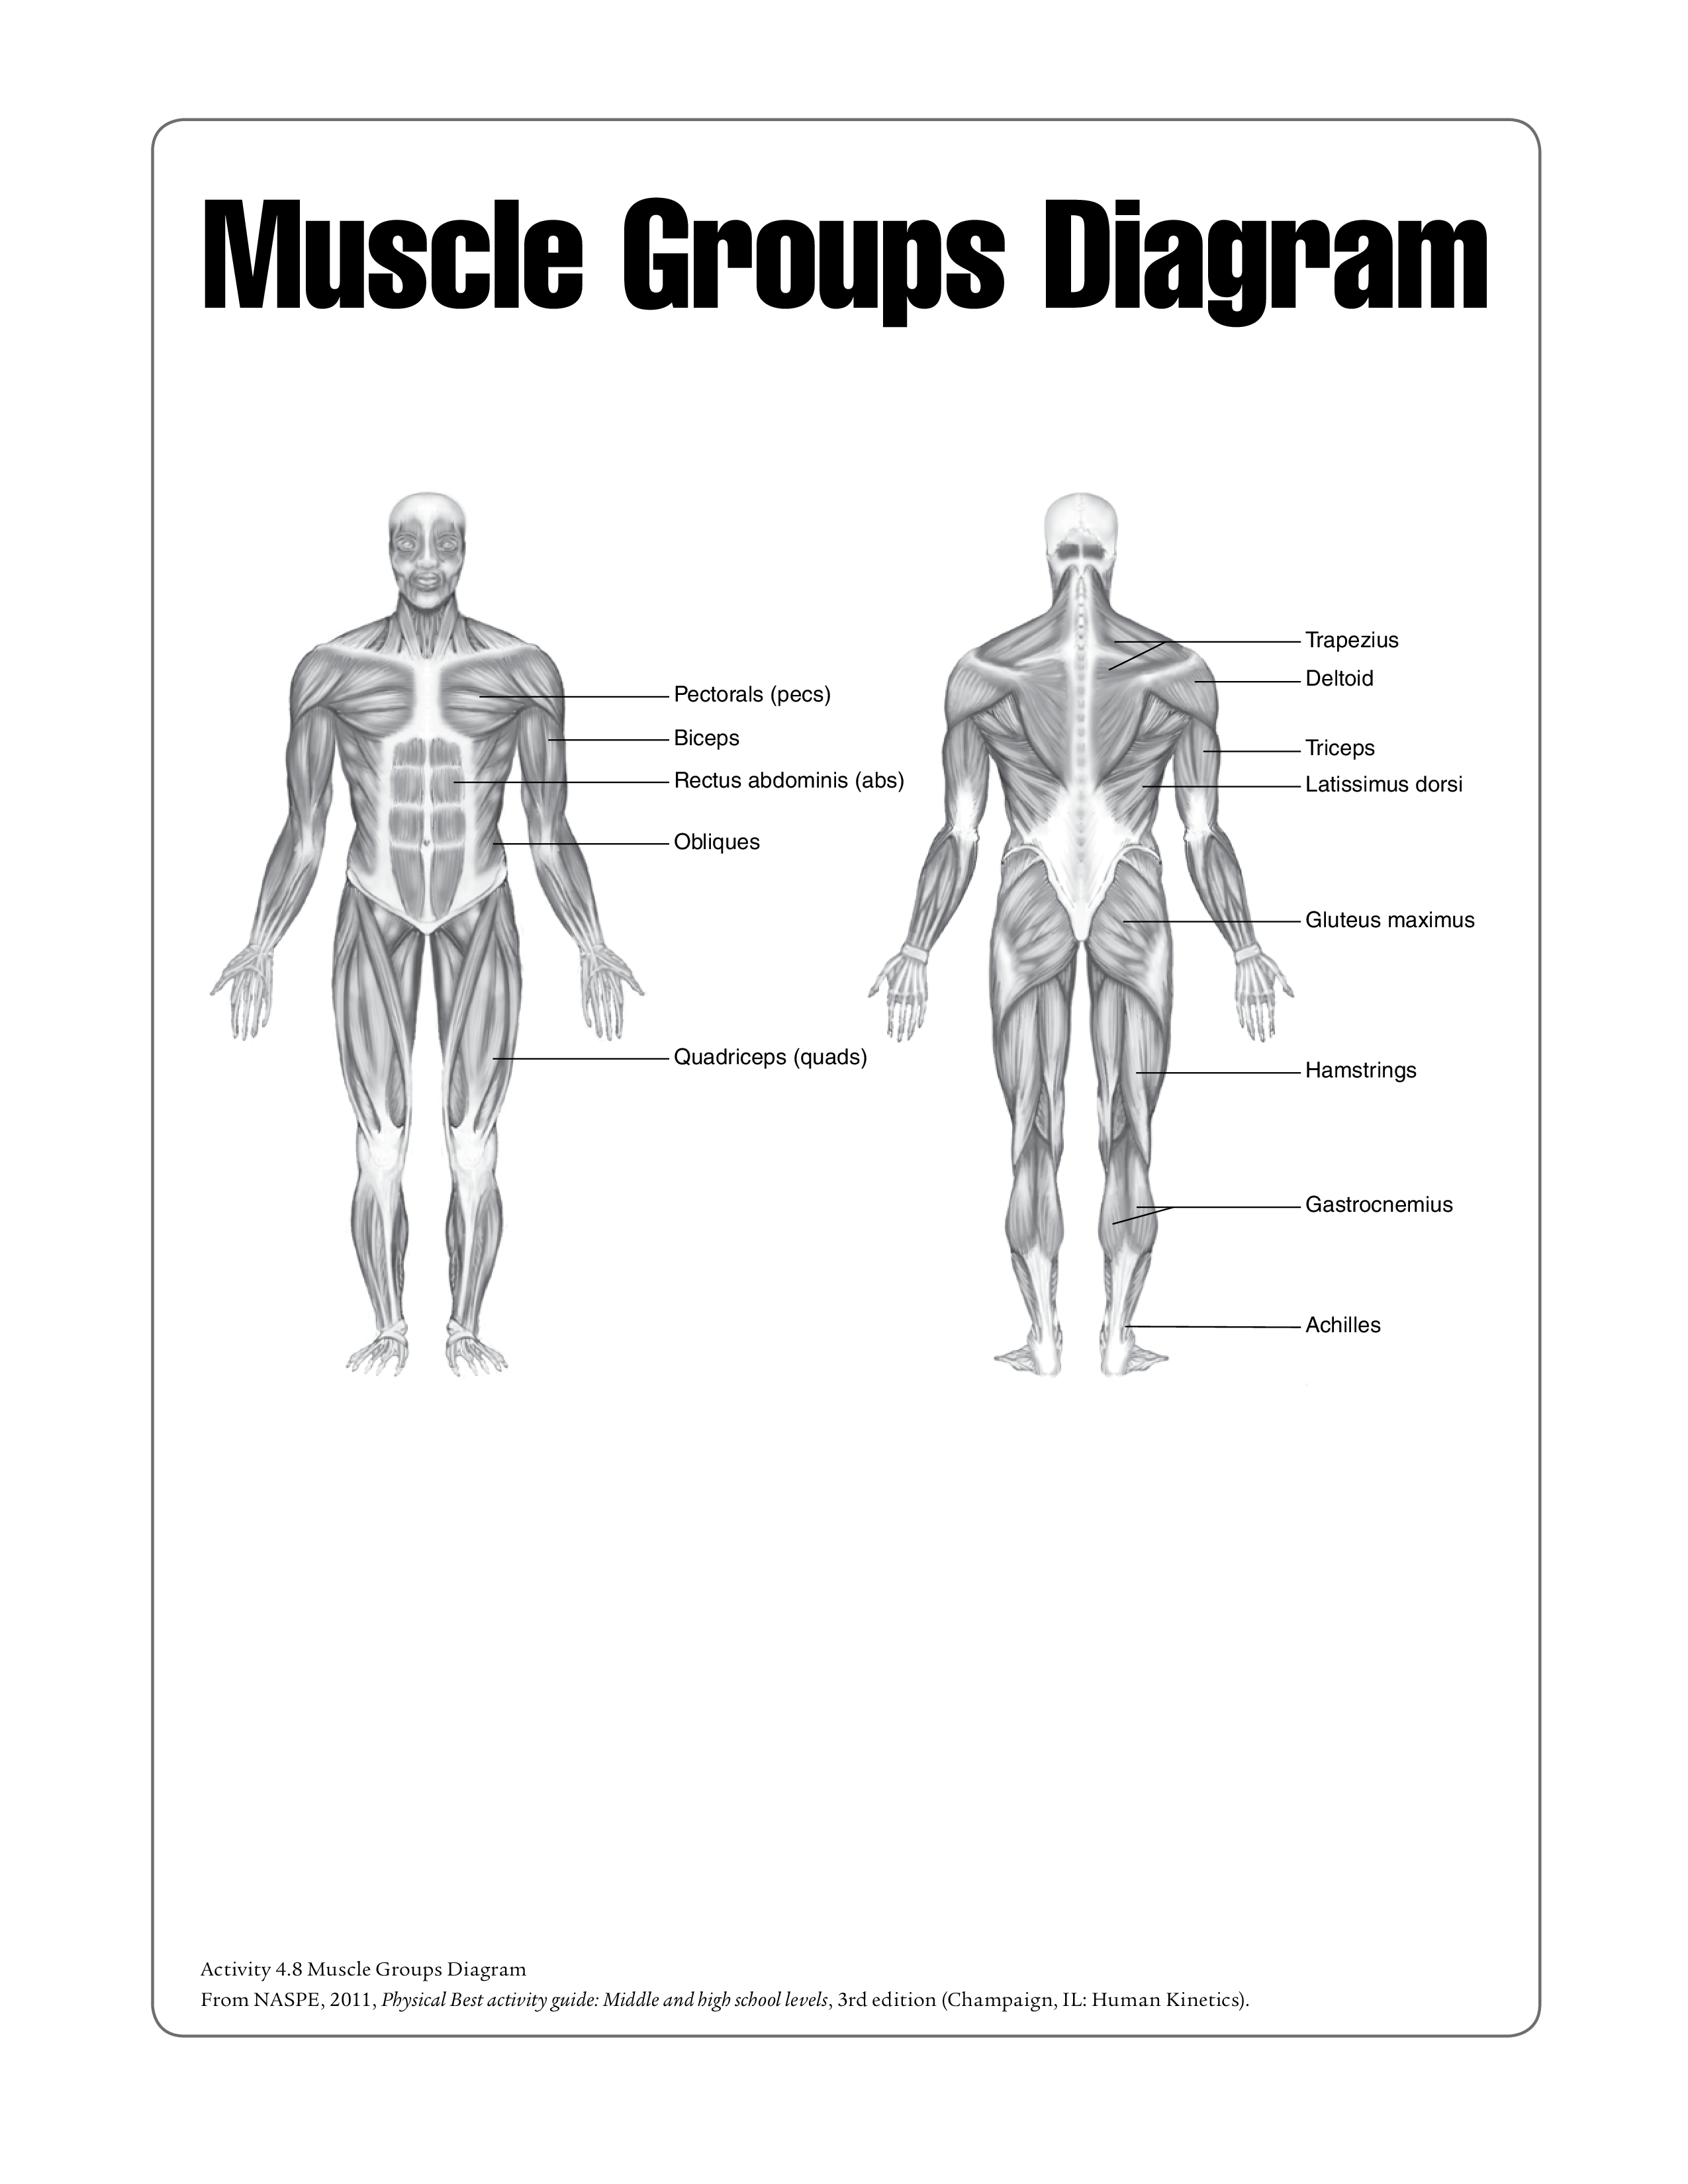 Free Human Muscle Chart Templates At Allbusinesstemplates